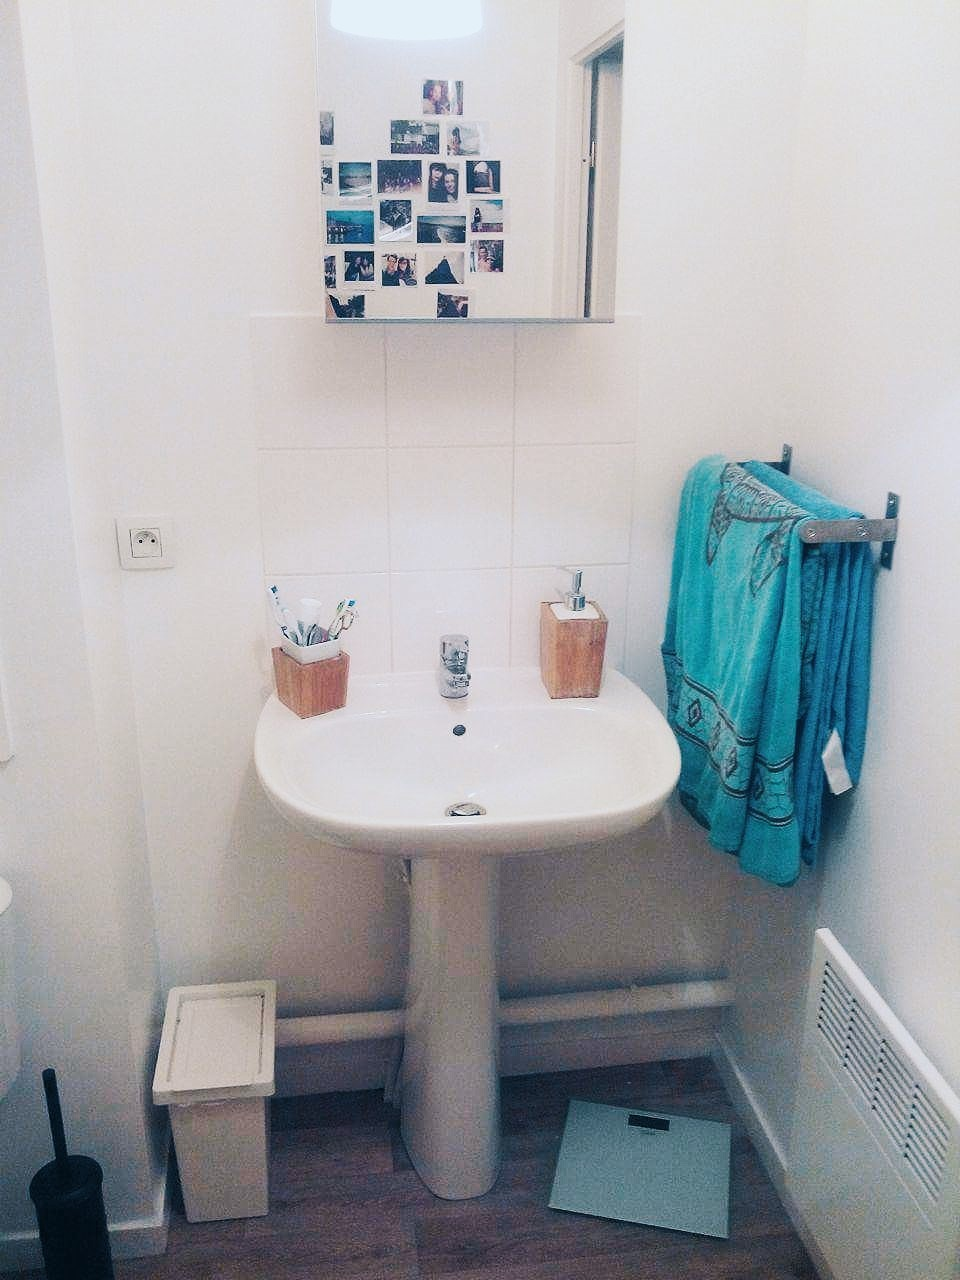 Rent A Room In Paris For Students